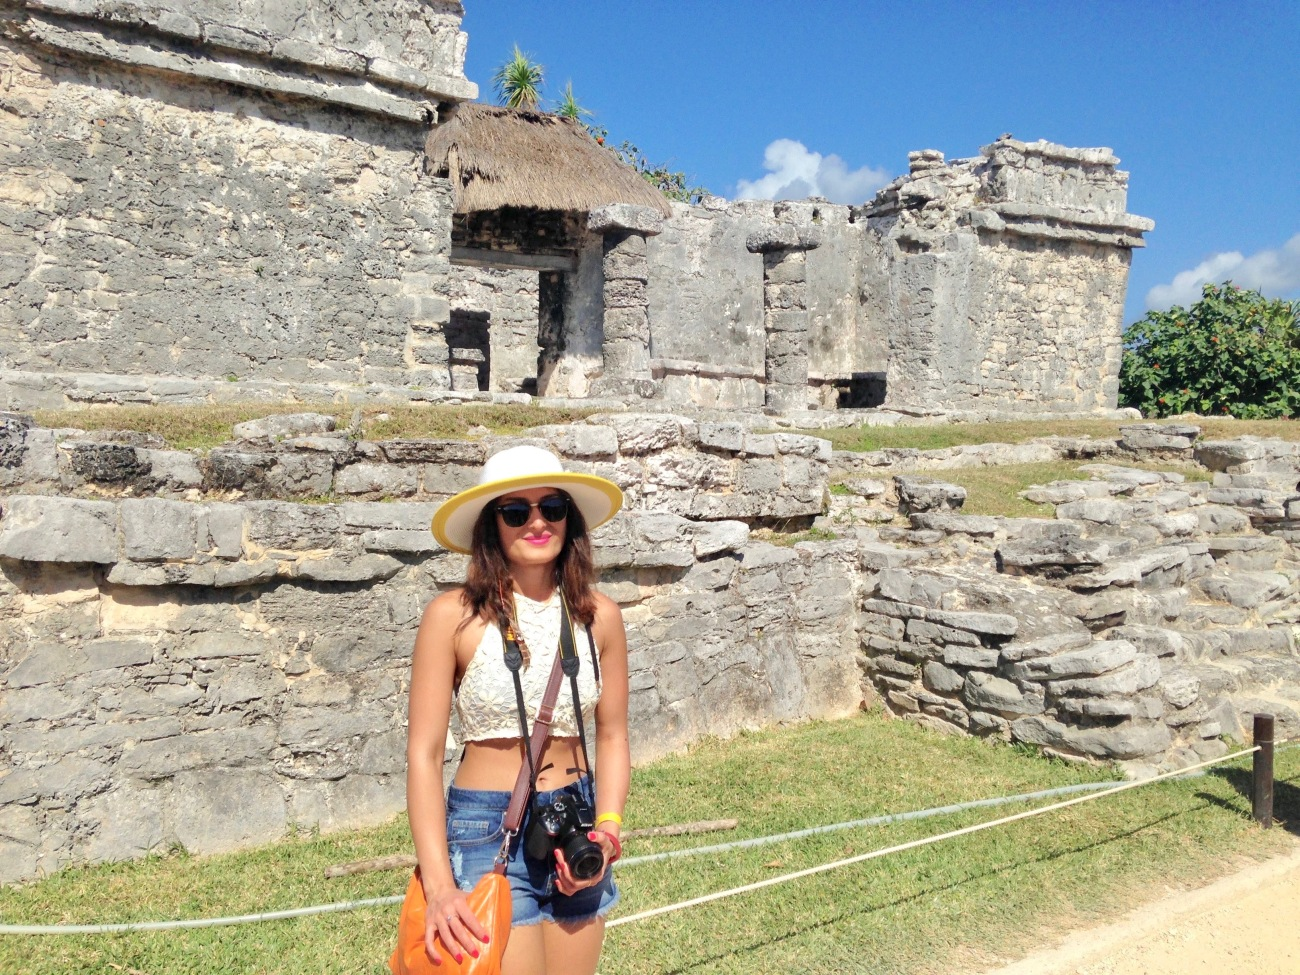 white sand beaches of cancun mexico, paradise island, resorts on hotel zone, tulum mayan ruins